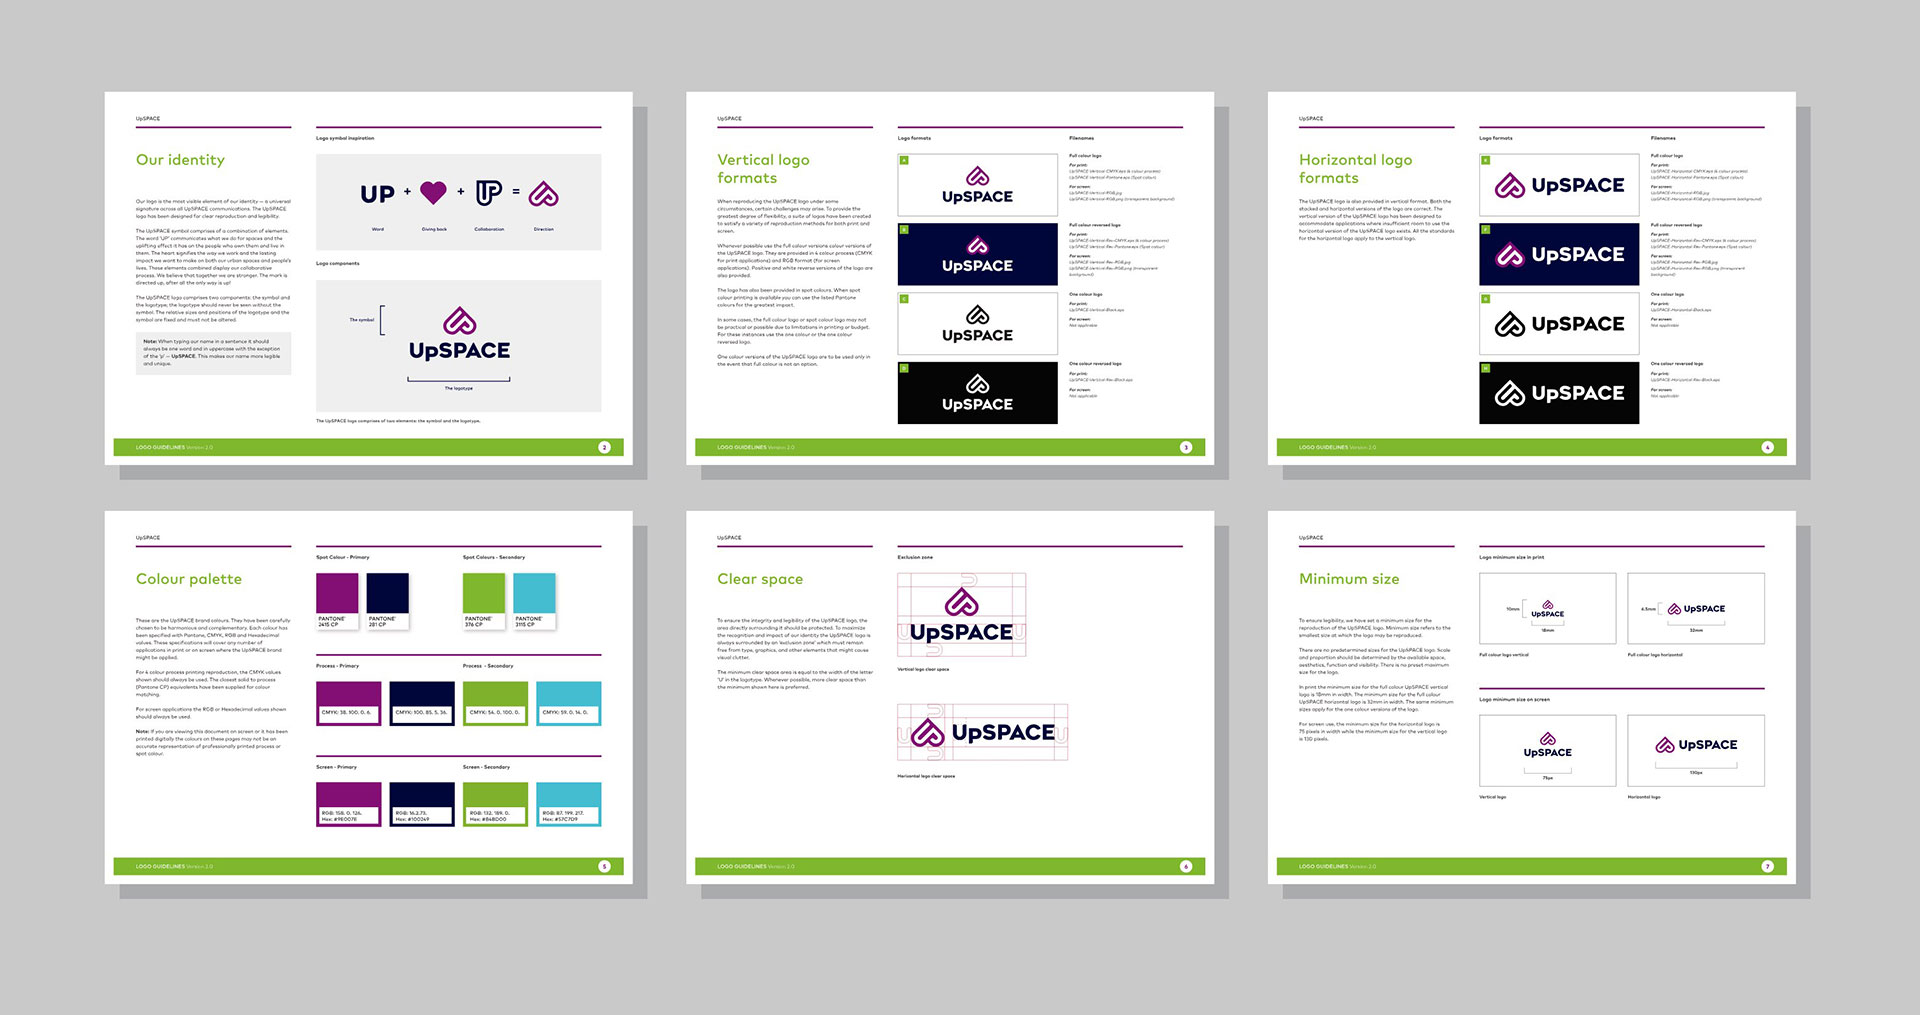 Upspace Brand Guidelines 6 pages